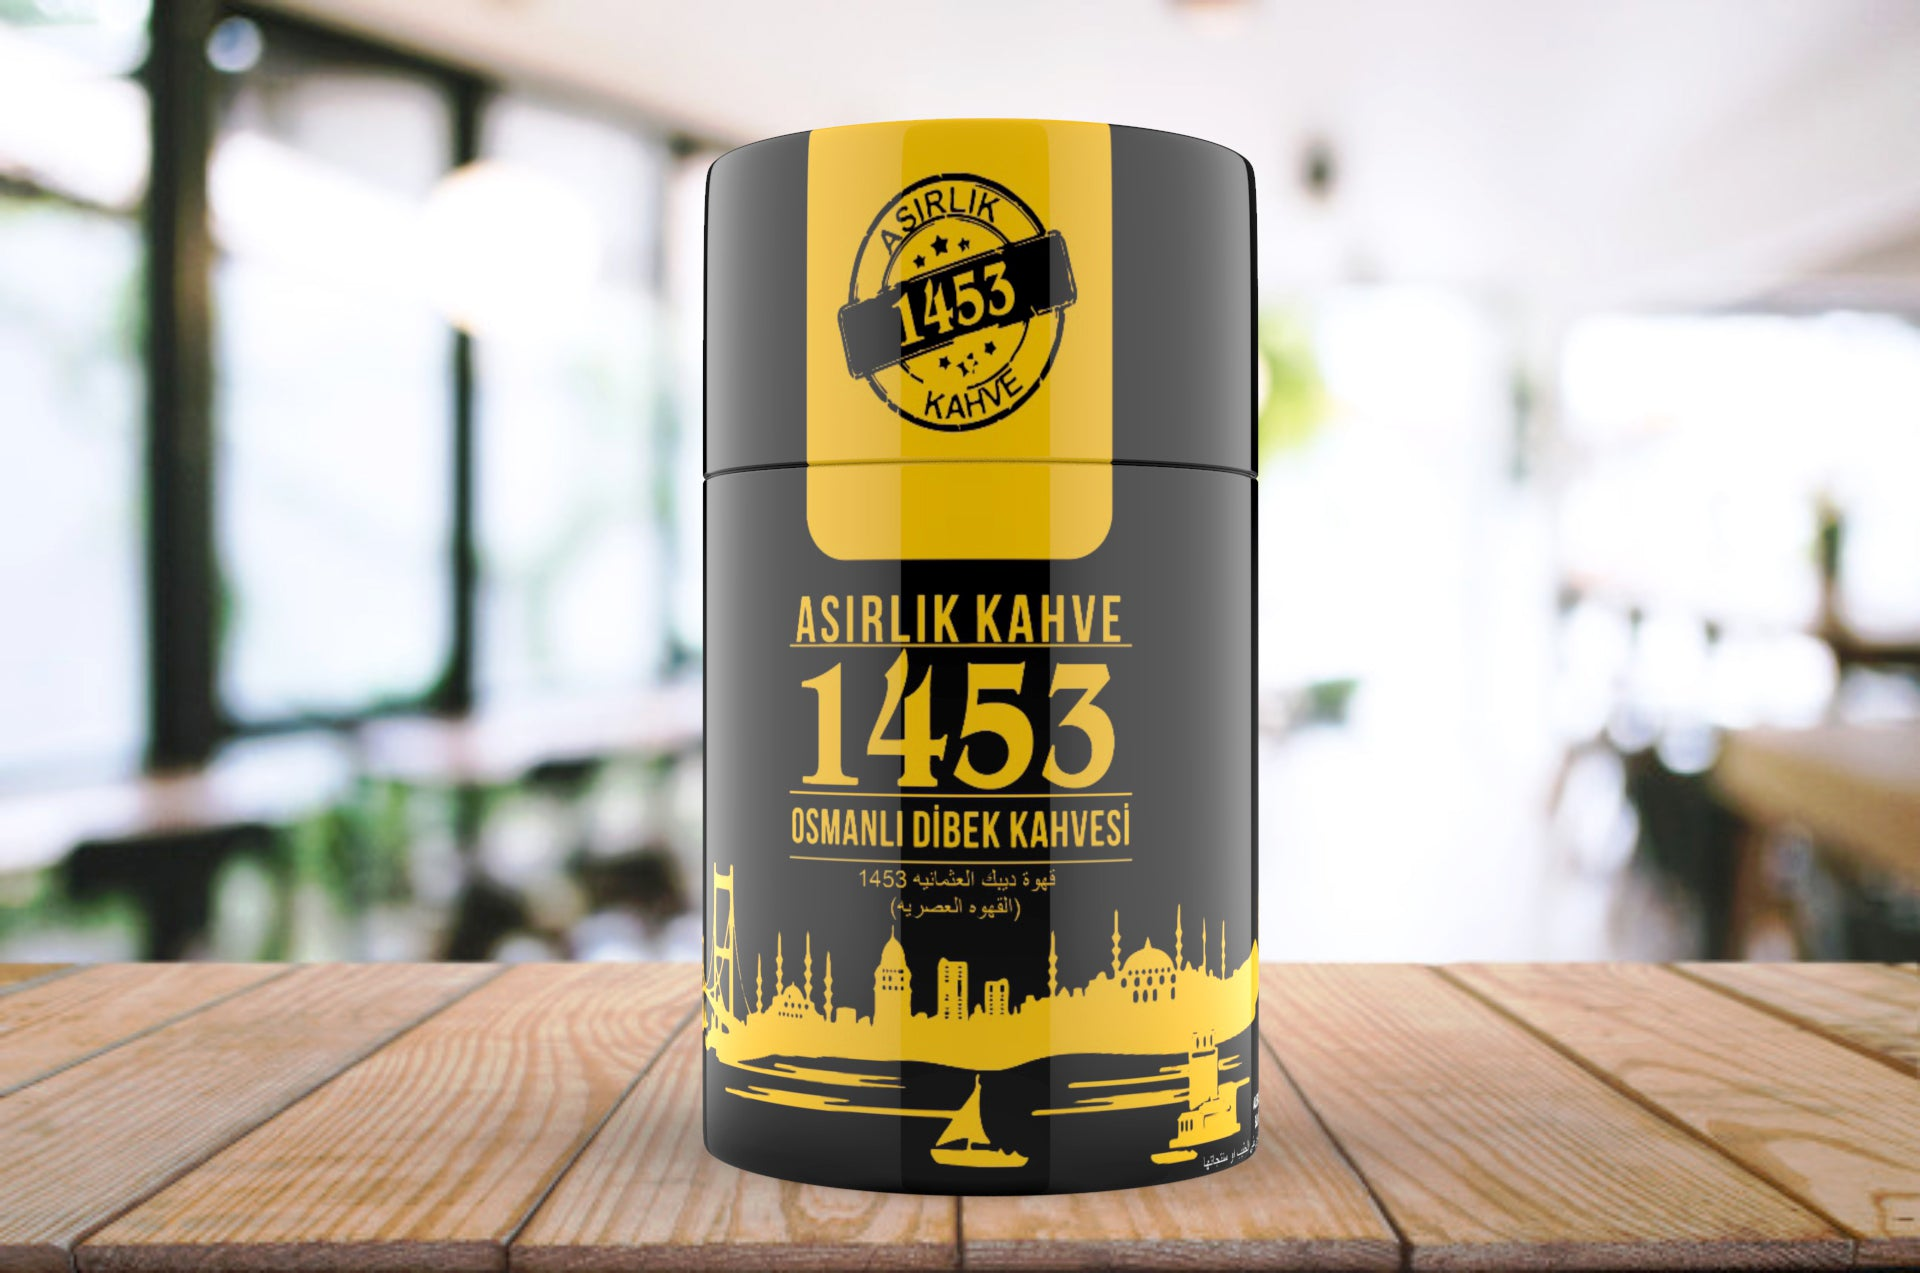 Artisan La Petite Asirlik 1453 Osmanli Dibek Kahvesi Turkish Coffee 250g / 8.81oz Can | Premium Fine Ground Arabica Coffee, Medium Roast, Authentic Turkish Specialty,Fresh Roasted,Non-GMO,Vegan, Halal